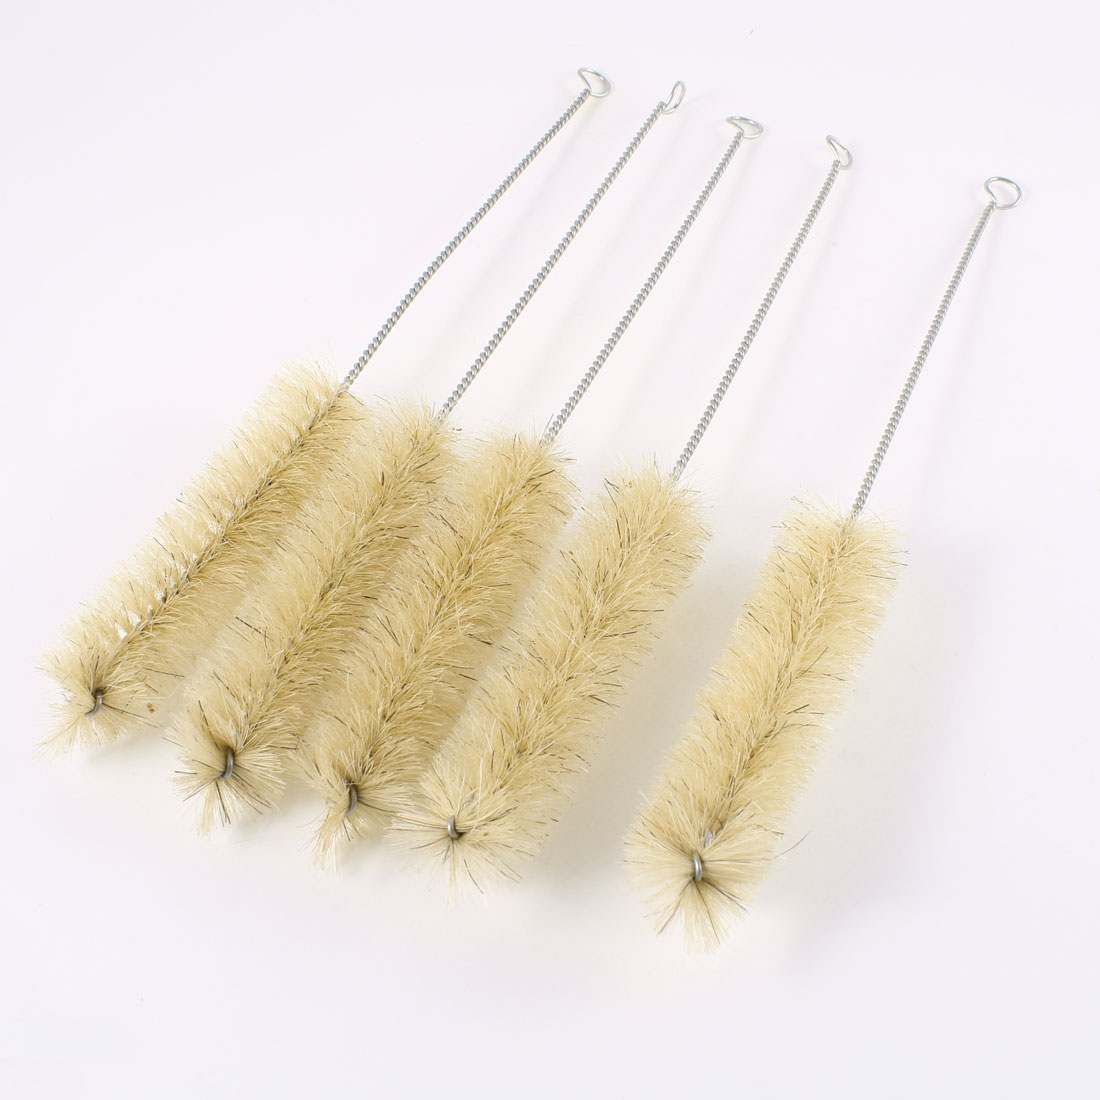 "5 Pcs 10.8"" Length Chemistry Test Tube Bottle Wash Cleaning Brush"